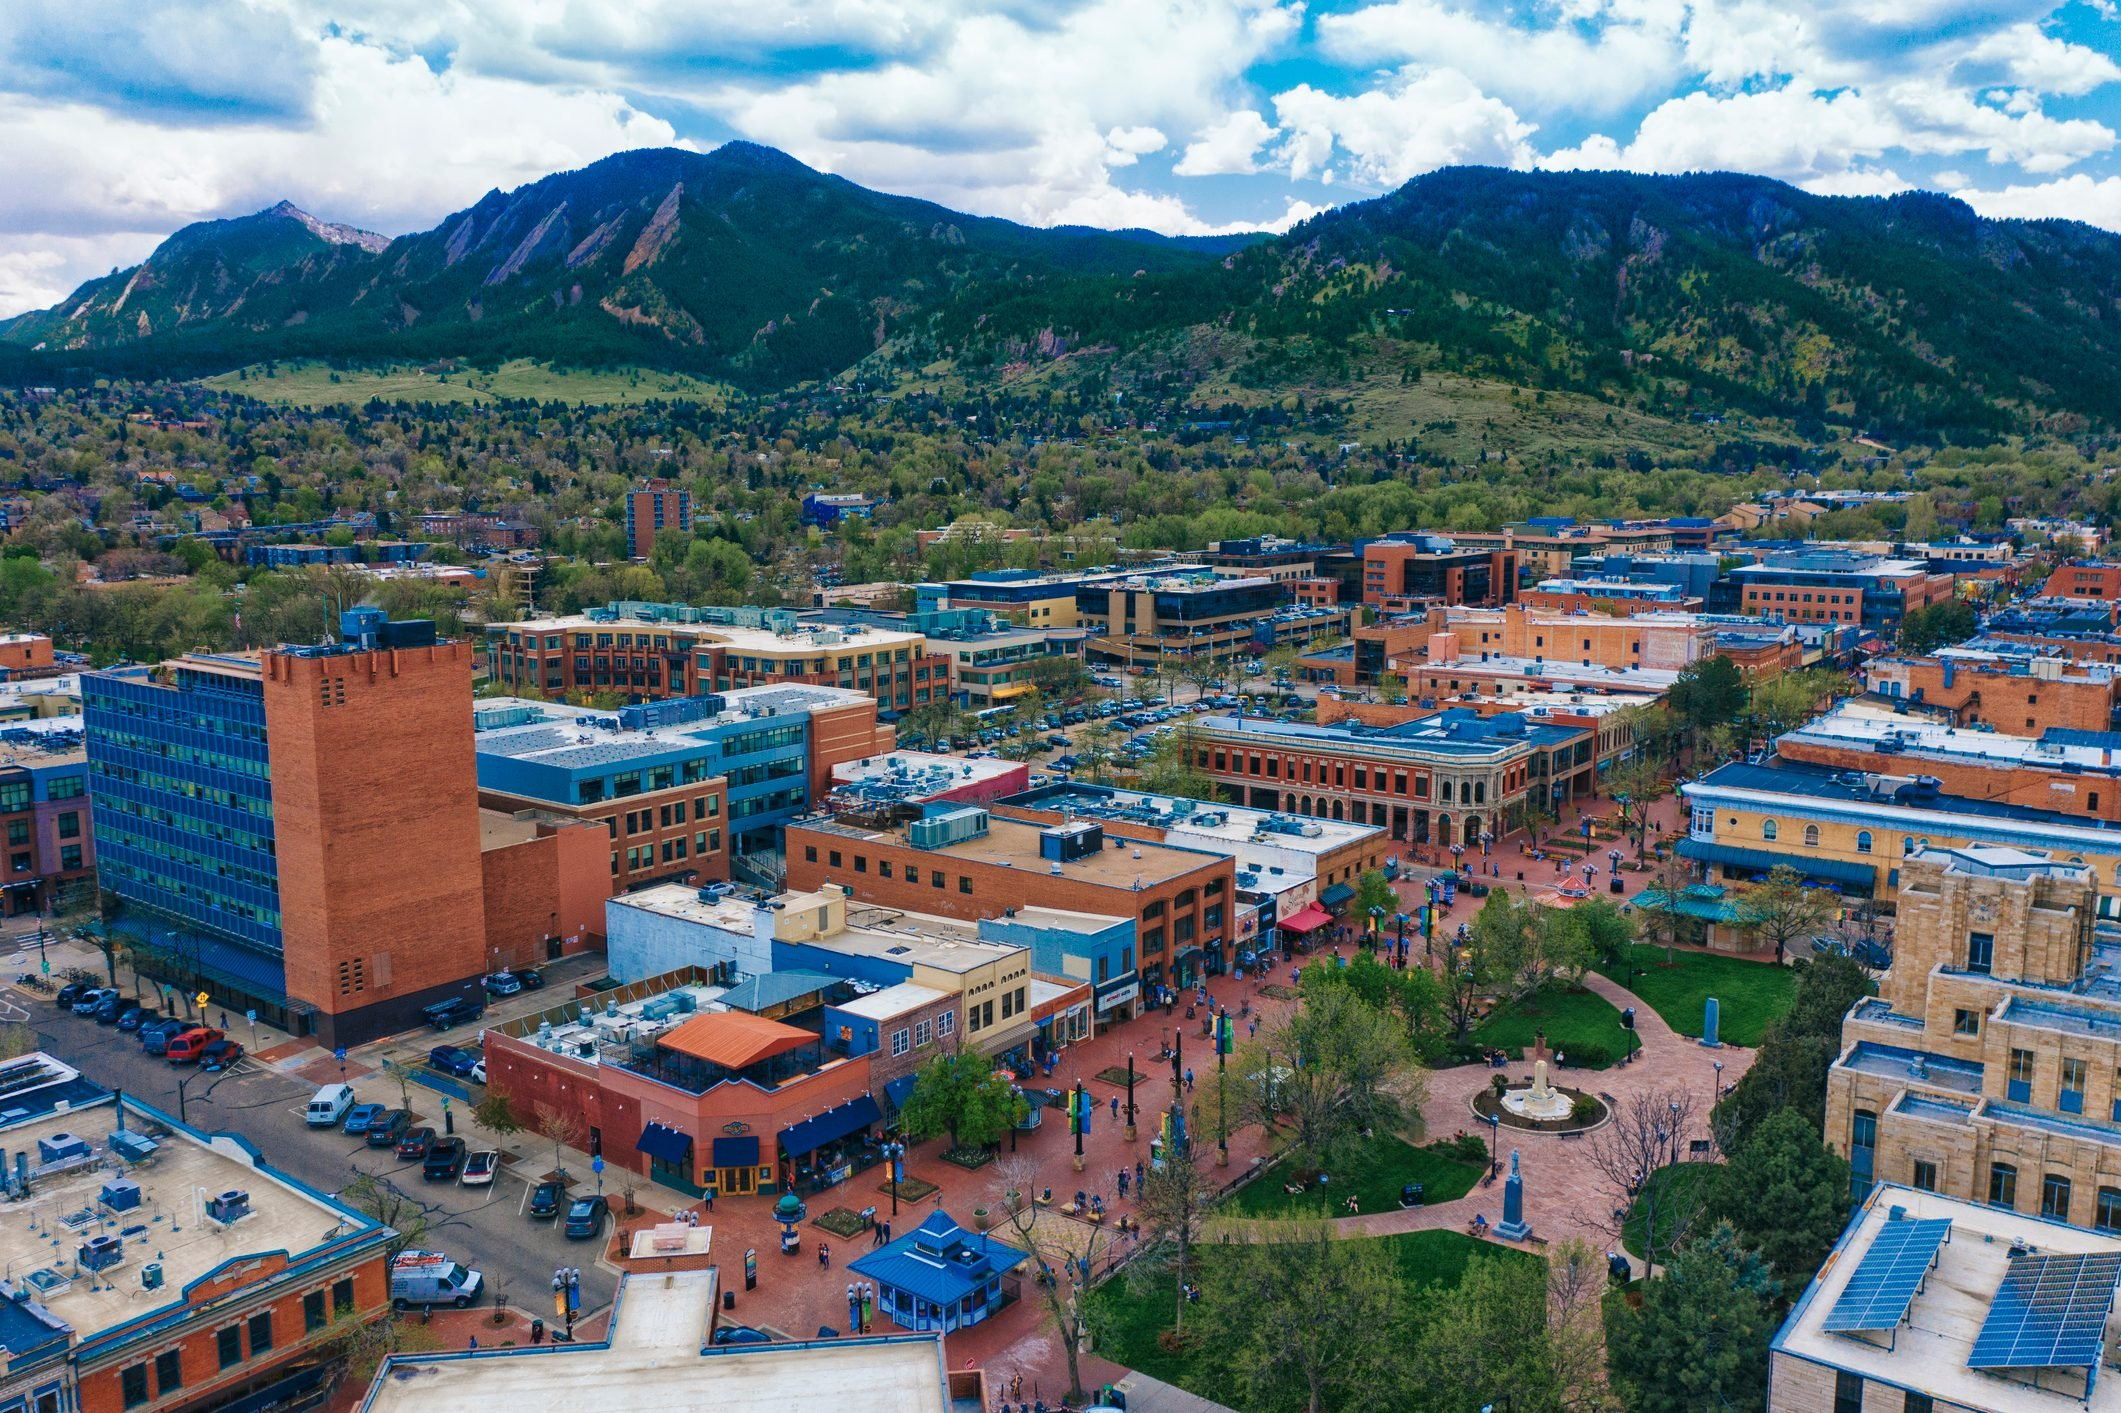 Aerial view of Pearl Street Mall in Boulder Colorado